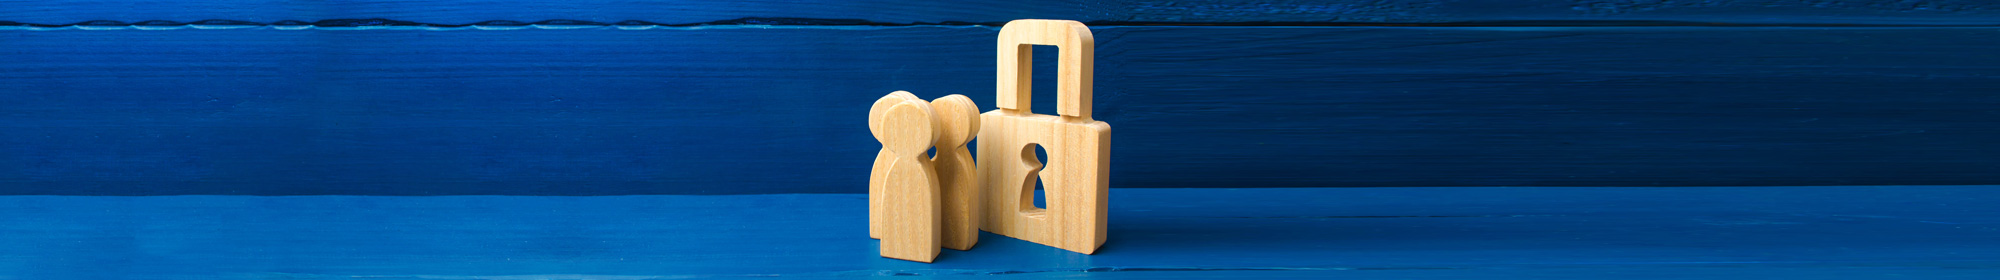 wooden lock with old fashioned keyhole on blue wooden tabletop